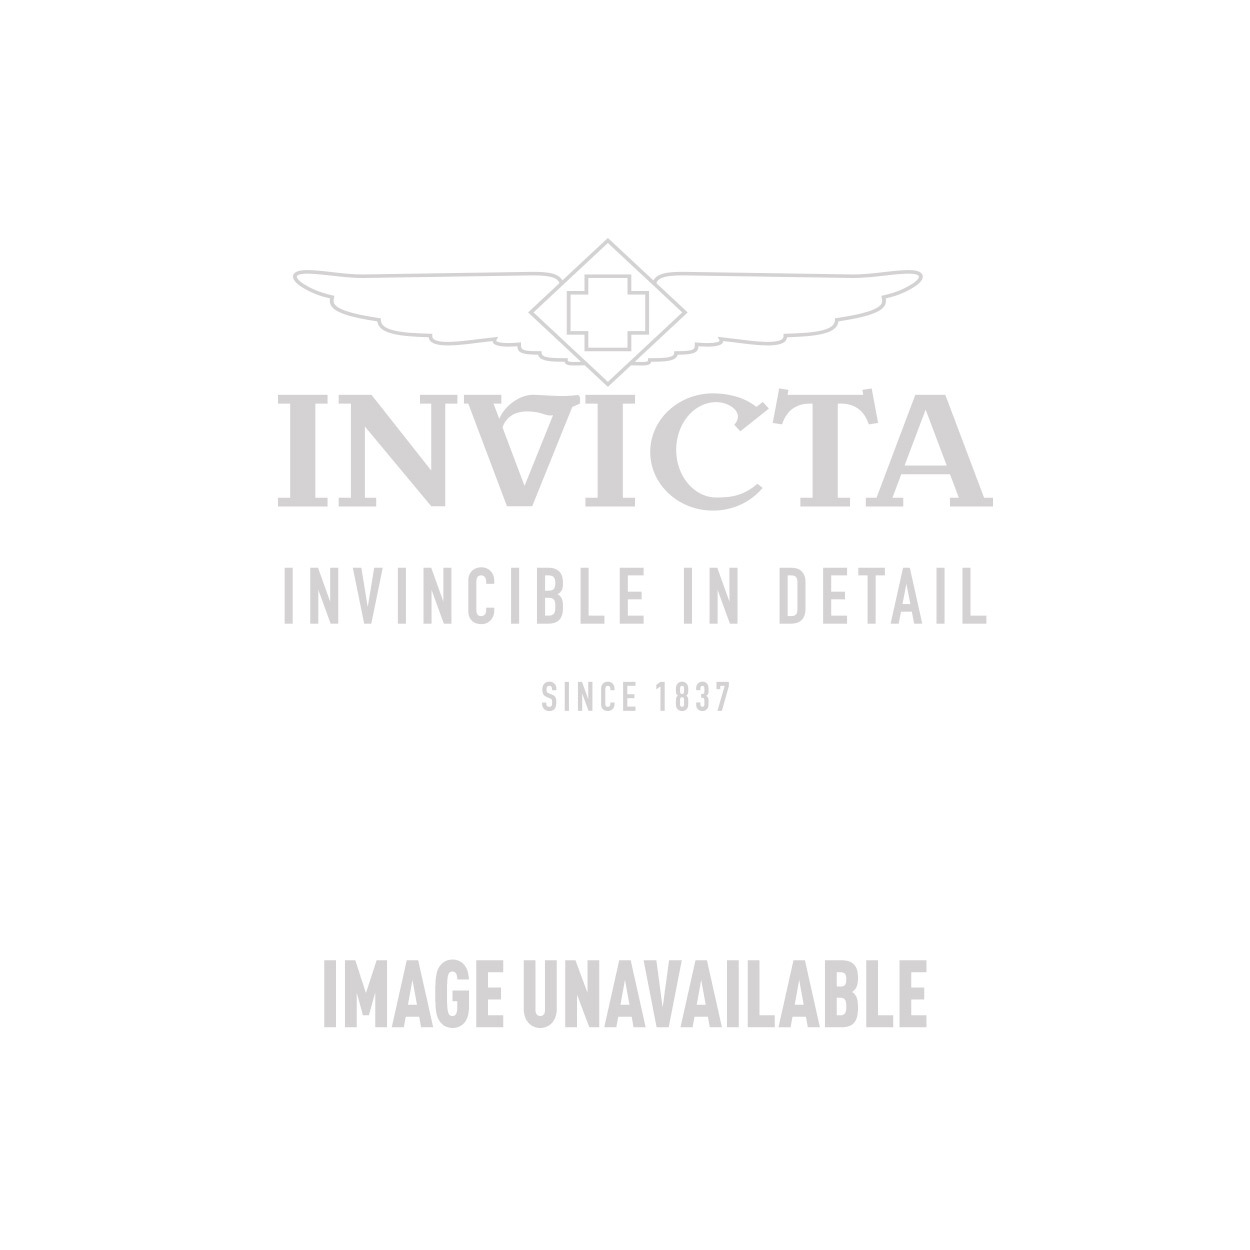 Invicta Venom Swiss Made Quartz Watch - Rose Gold, Stainless Steel case Stainless Steel band - Model 17636